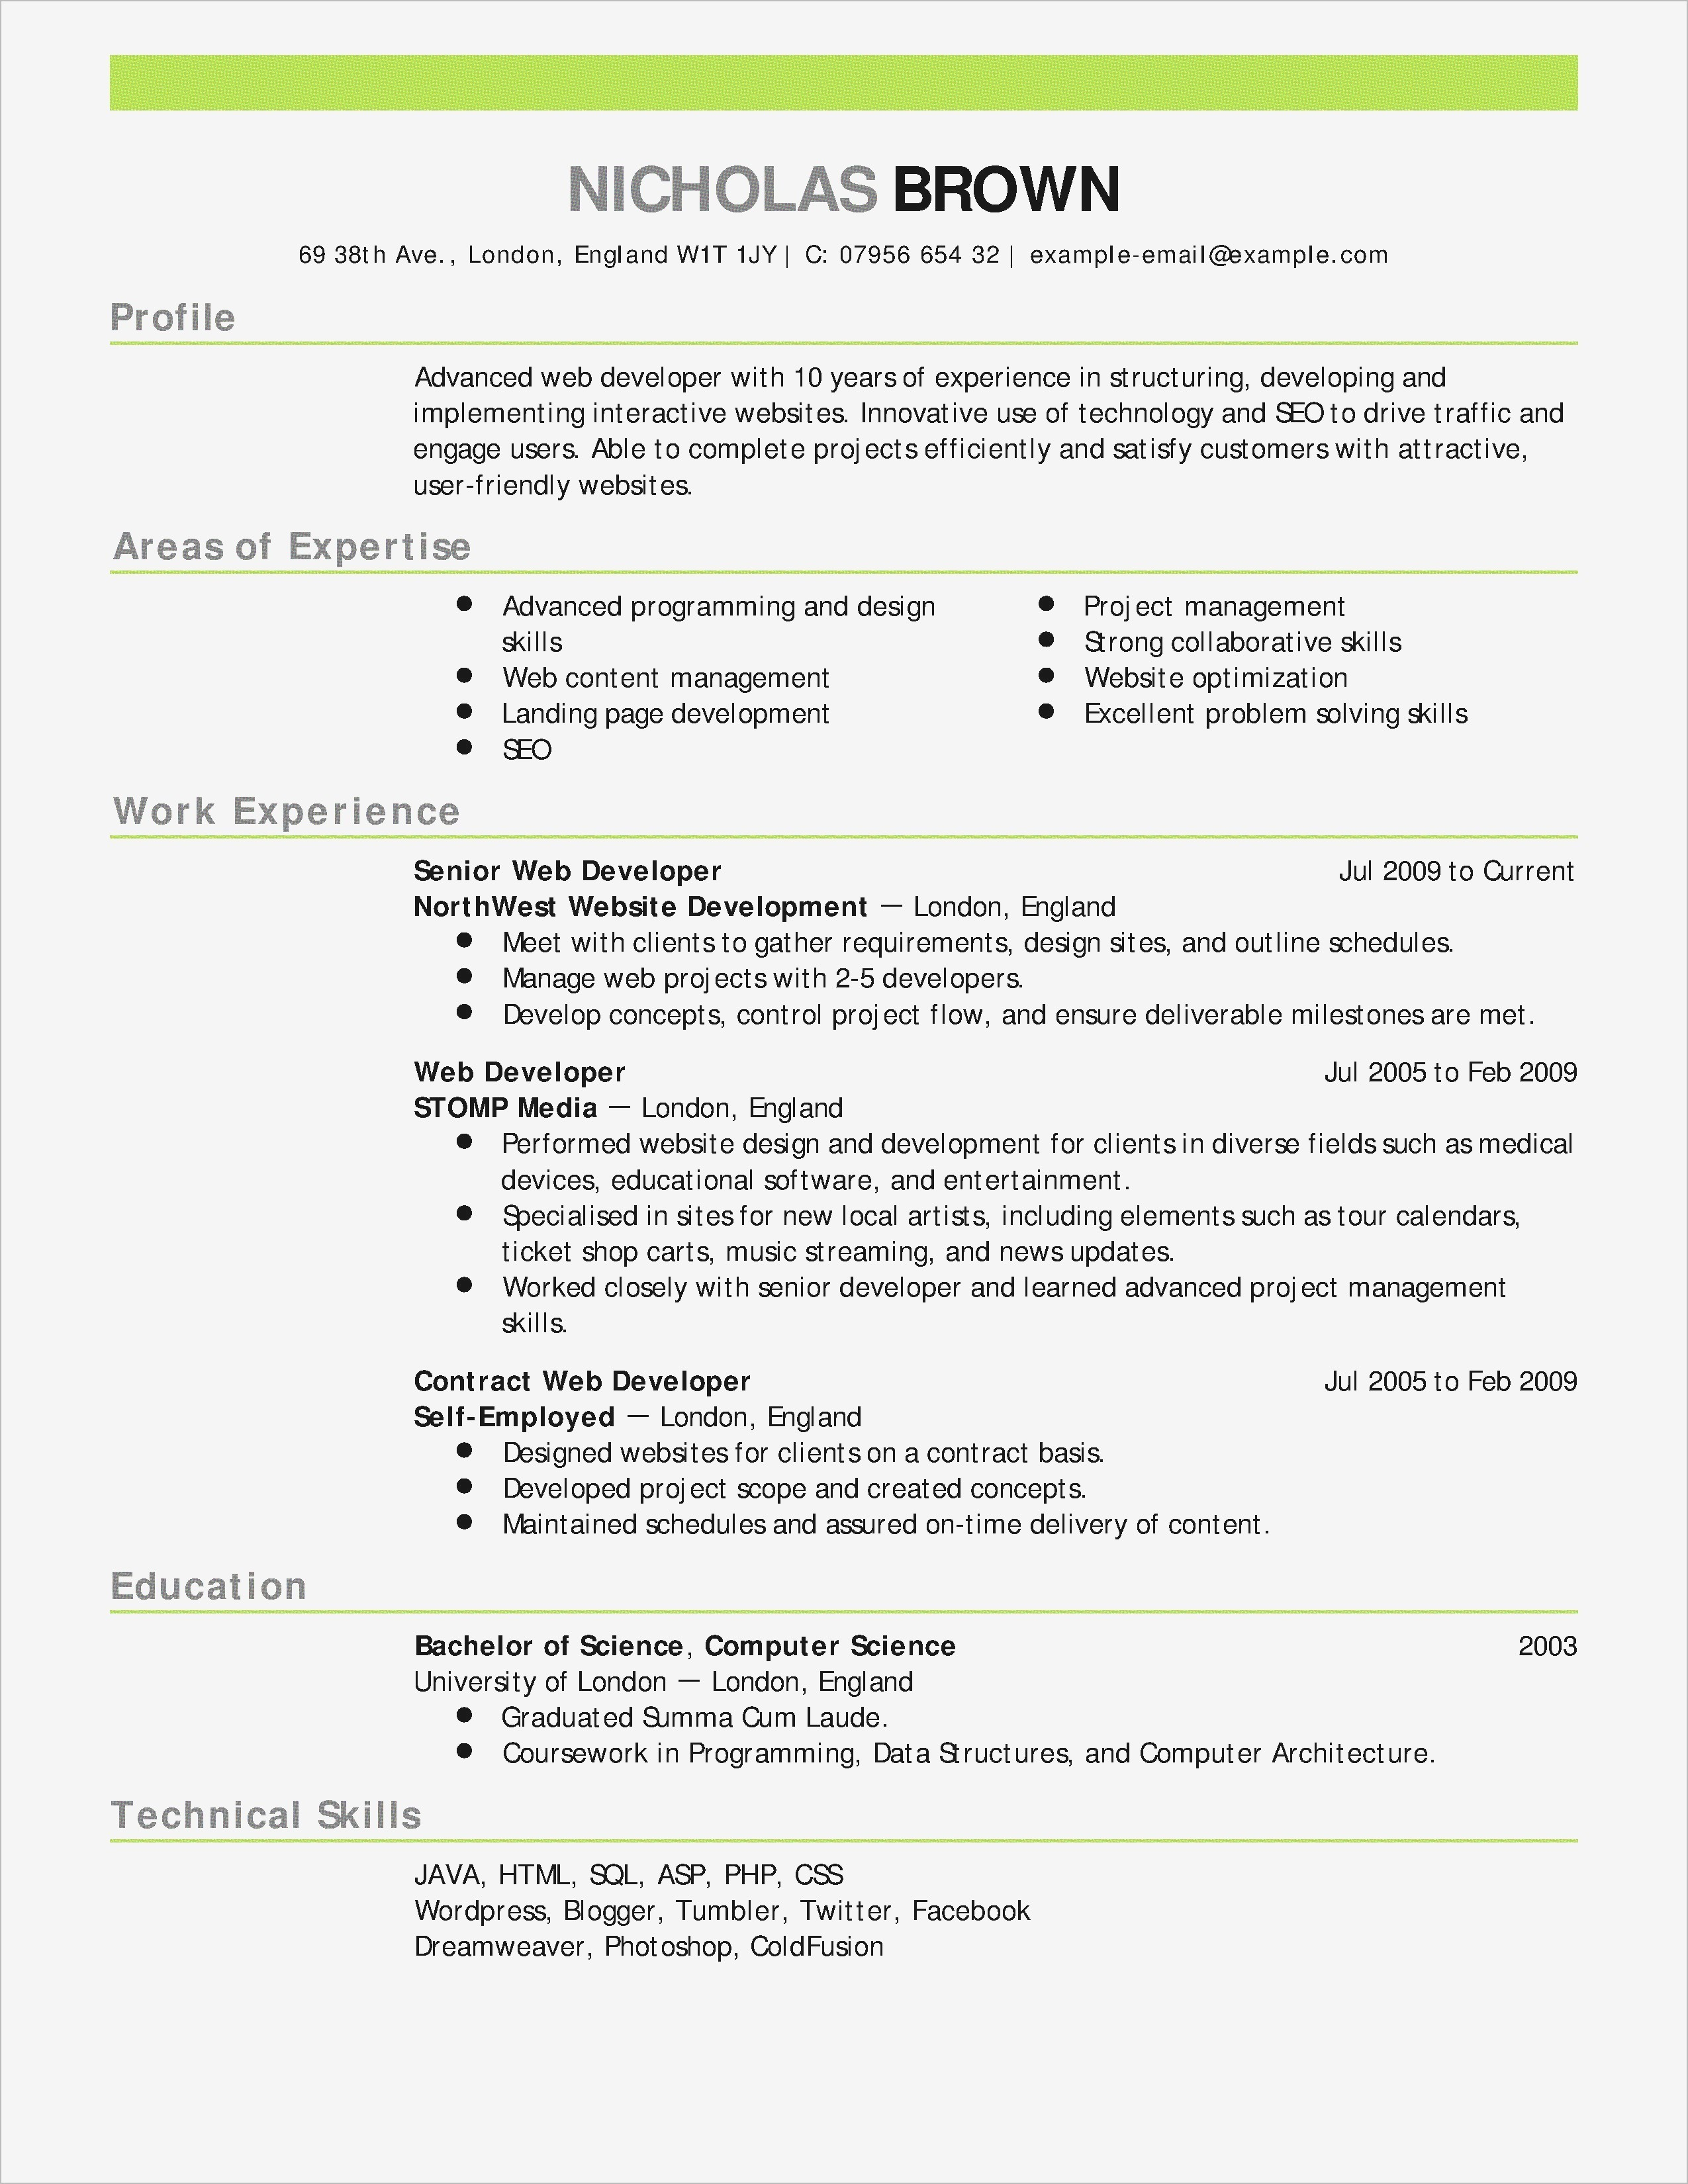 fox school of business resume template example-Fox School Business Resume Template 4-k